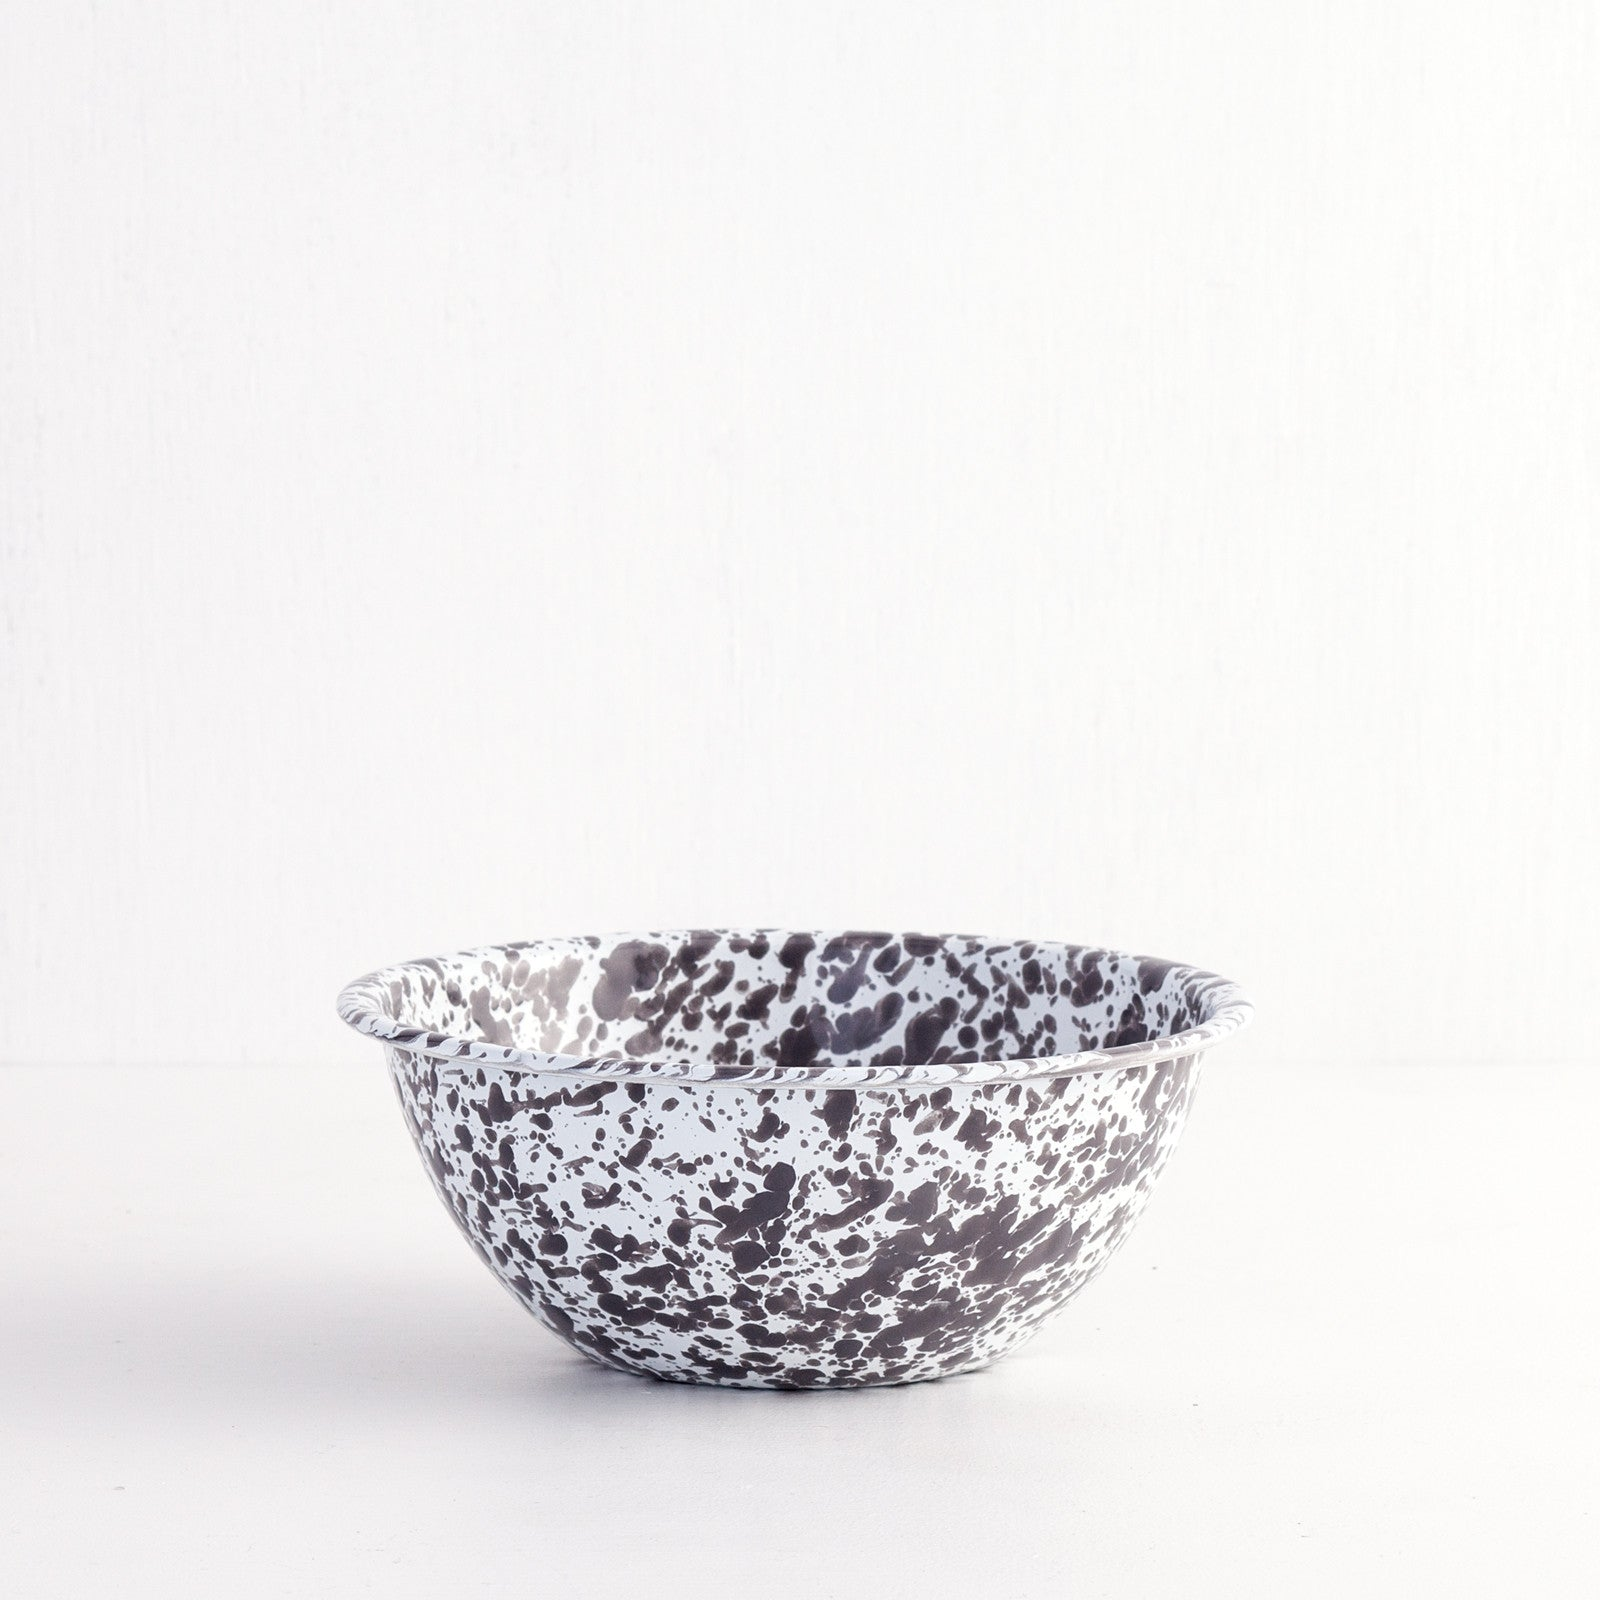 Marbled Enamel Serving Bowl